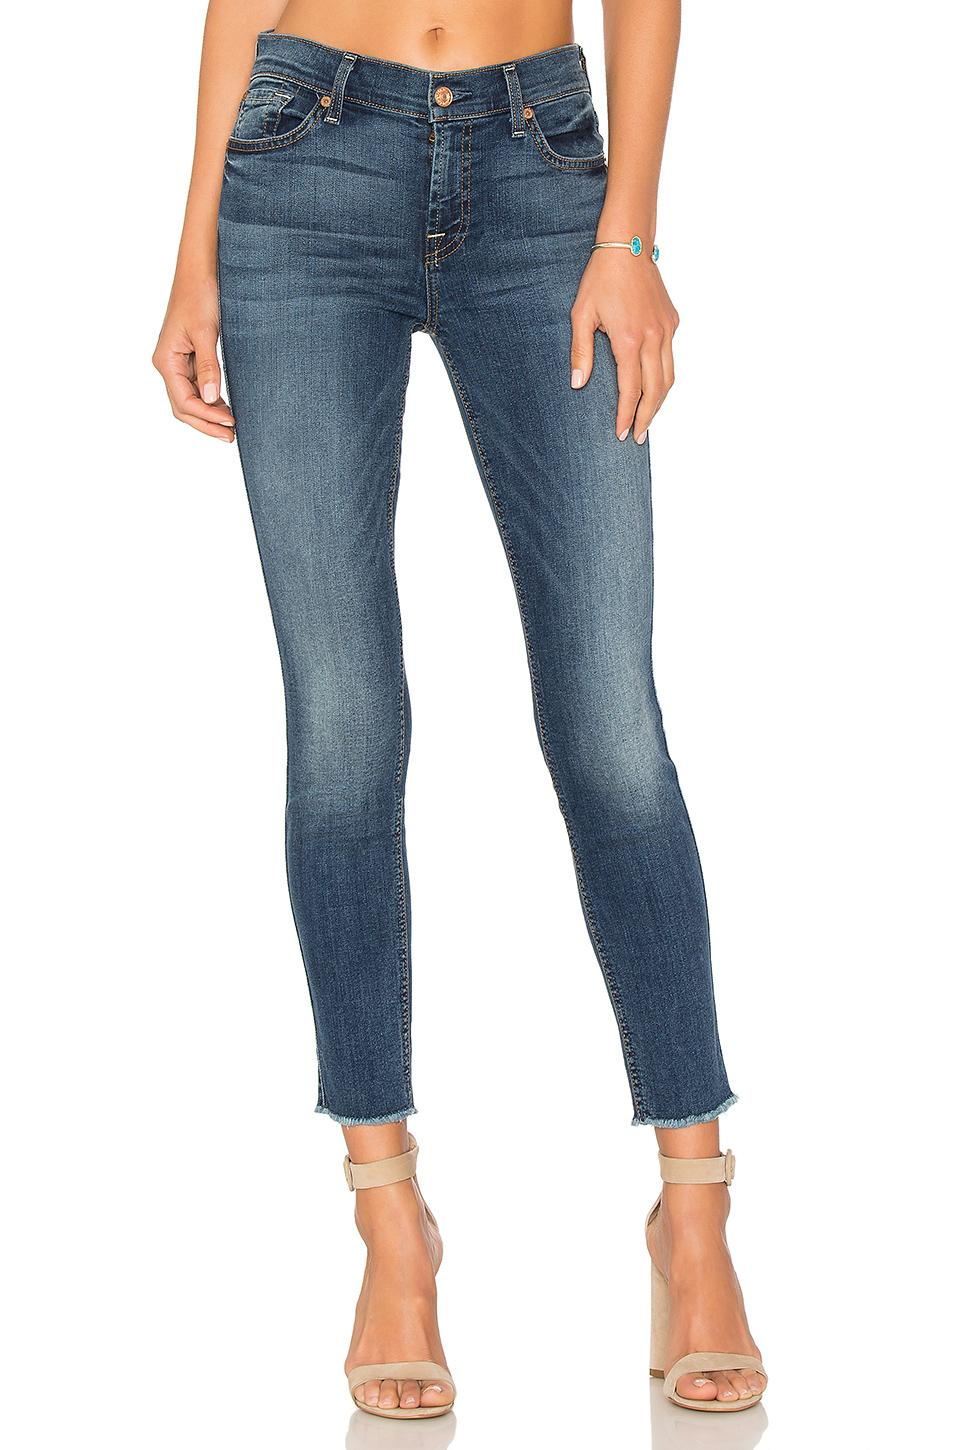 7 For All Mankind Ankle Skinny In Rich Costa Blue